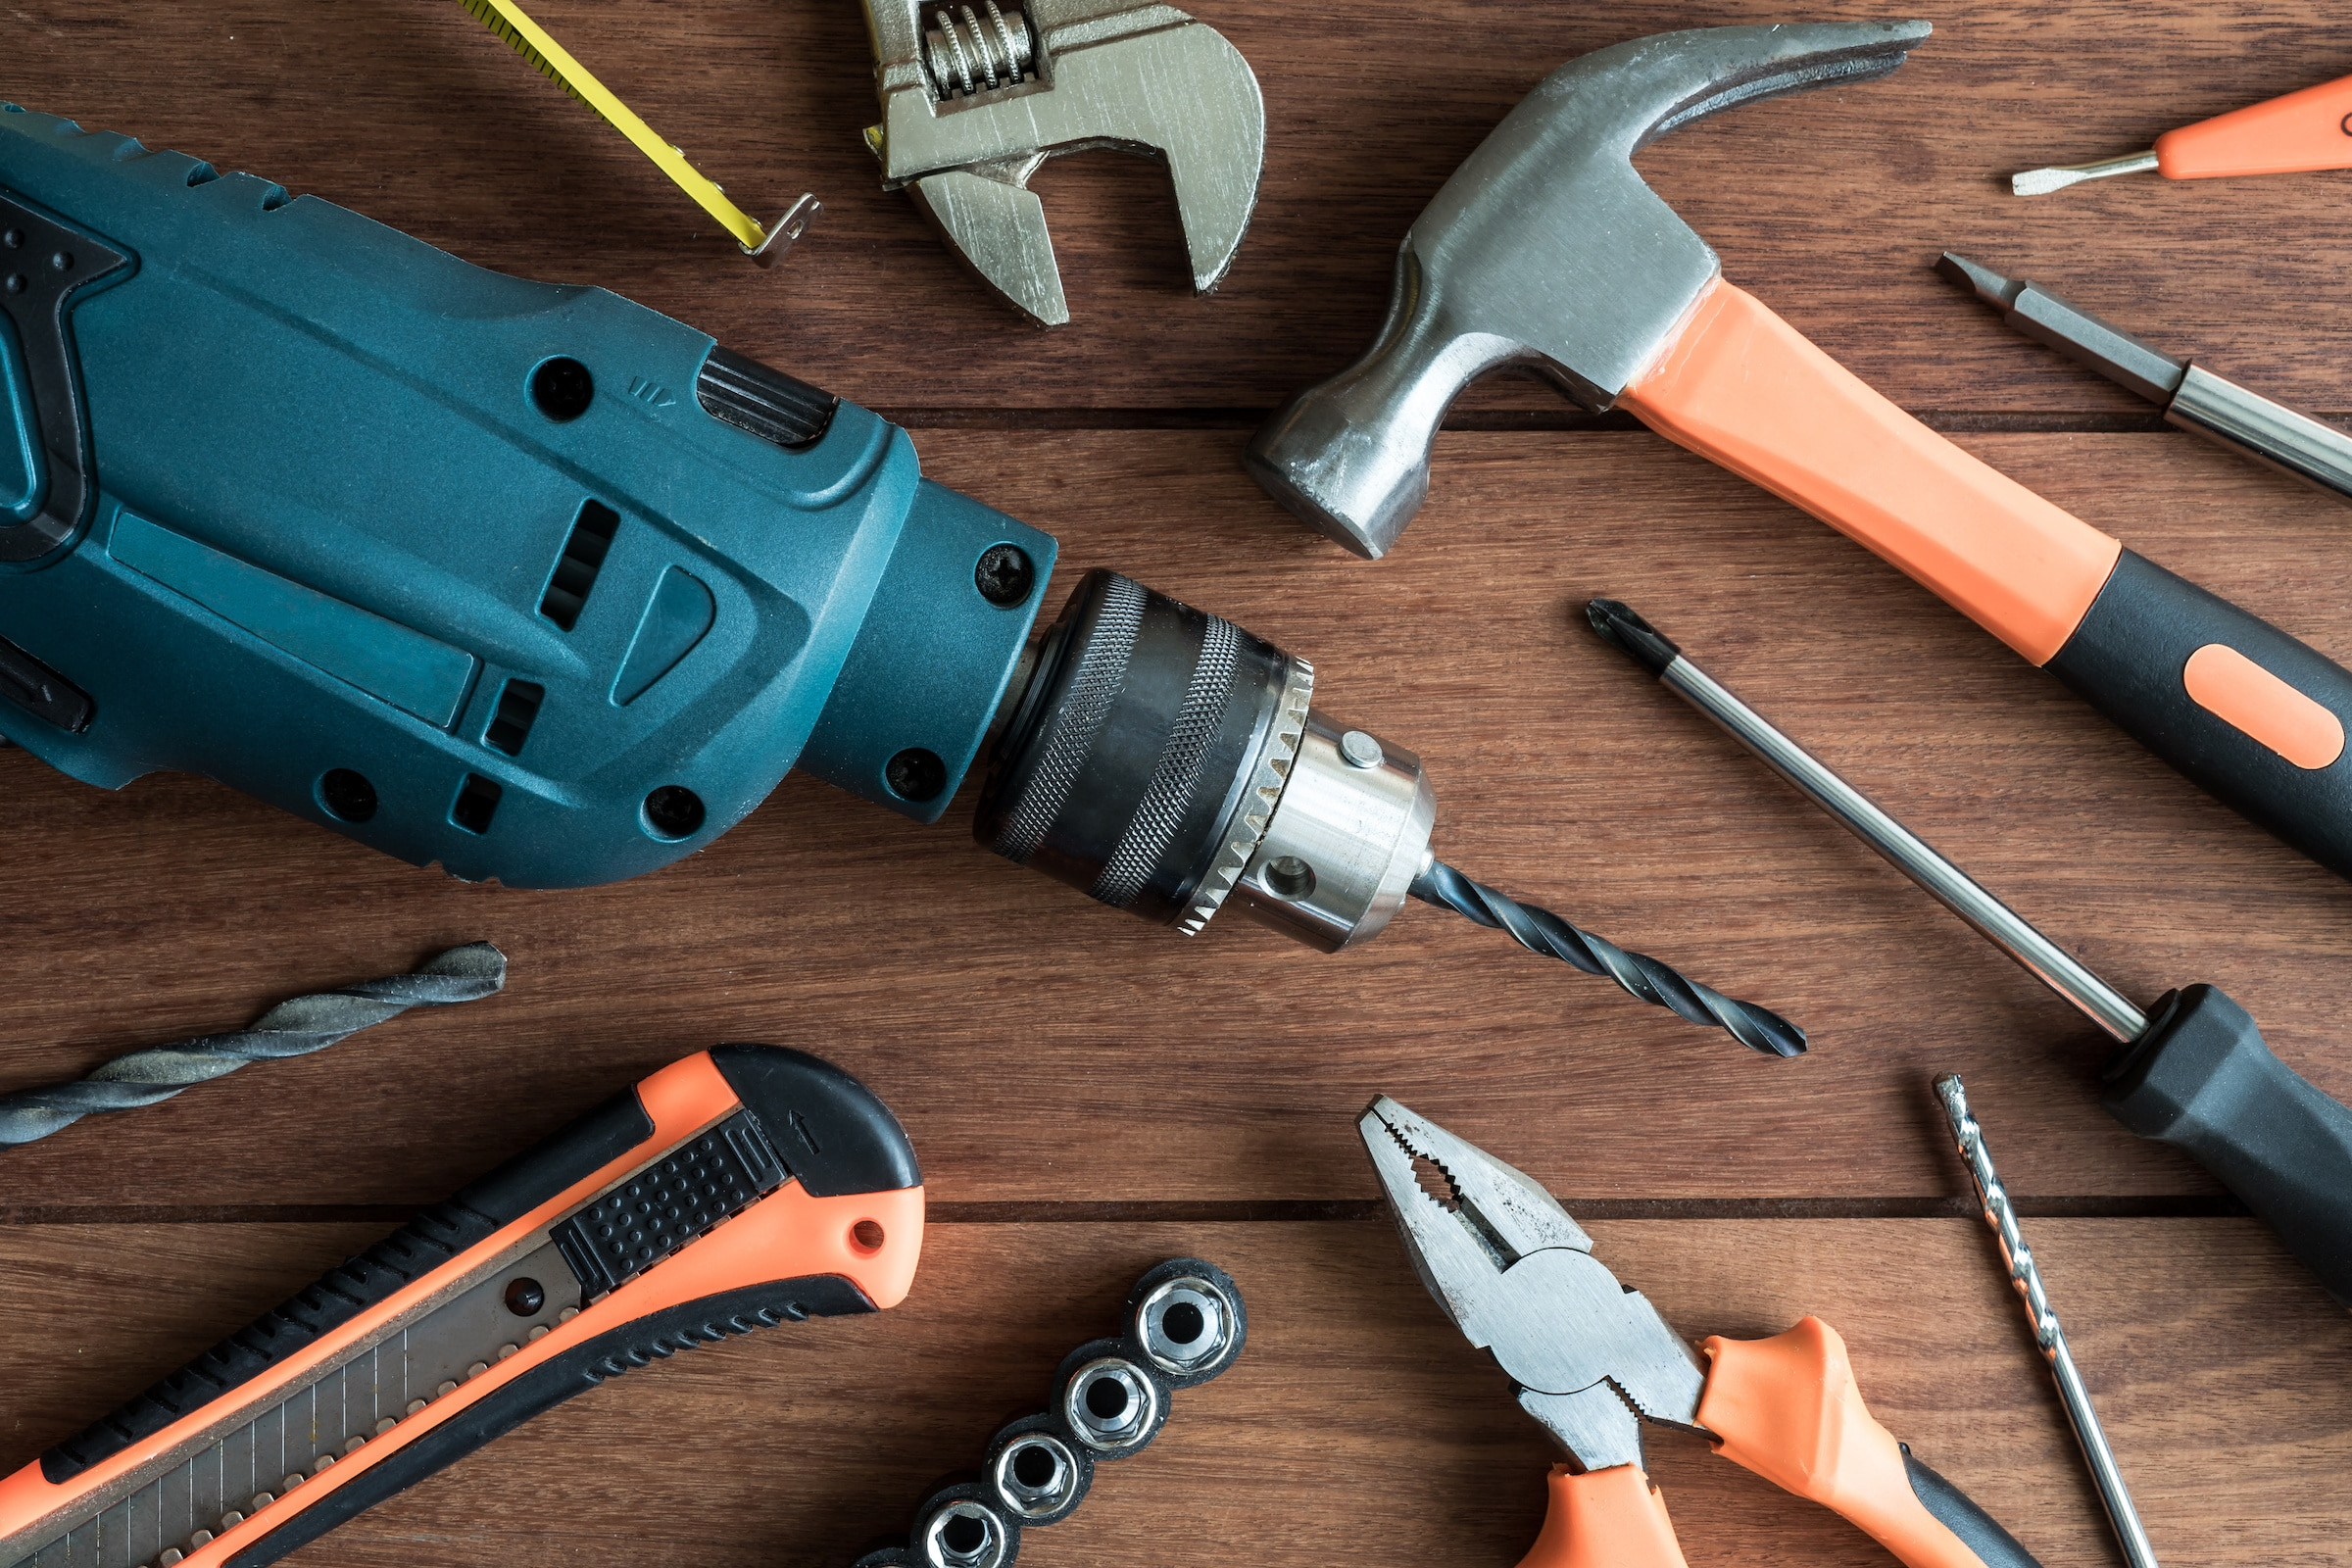 Top view of a set of work tools on wooden background